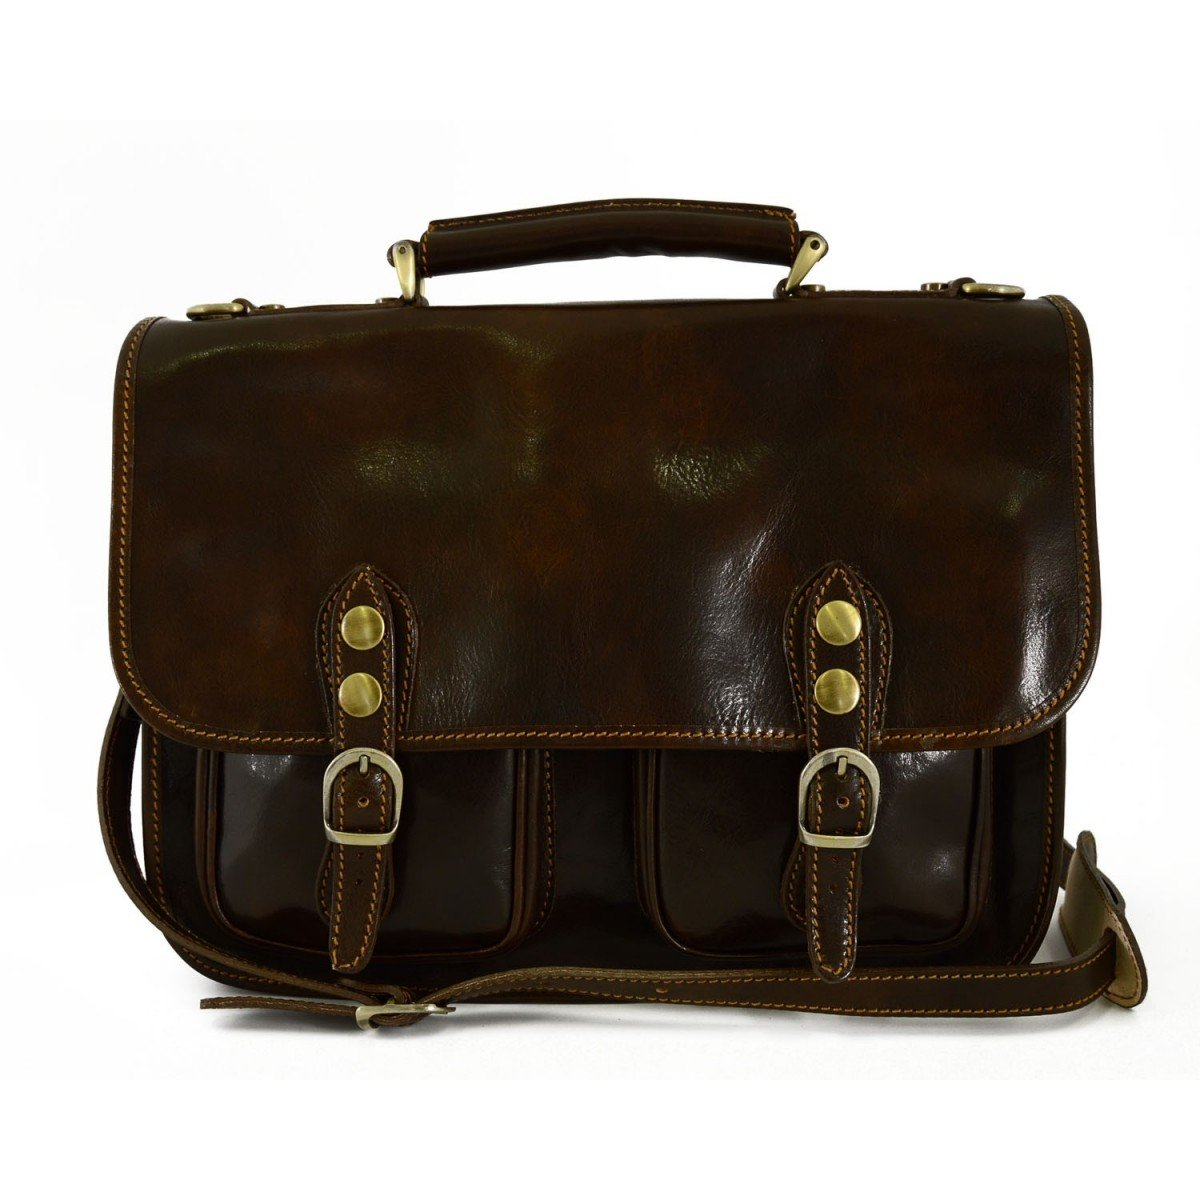 Made In Italy Business Briefcase In Genuine Leather 2 Compartments Mod. Small Color Dark Brown - Business Bag   B01CHHYV3K